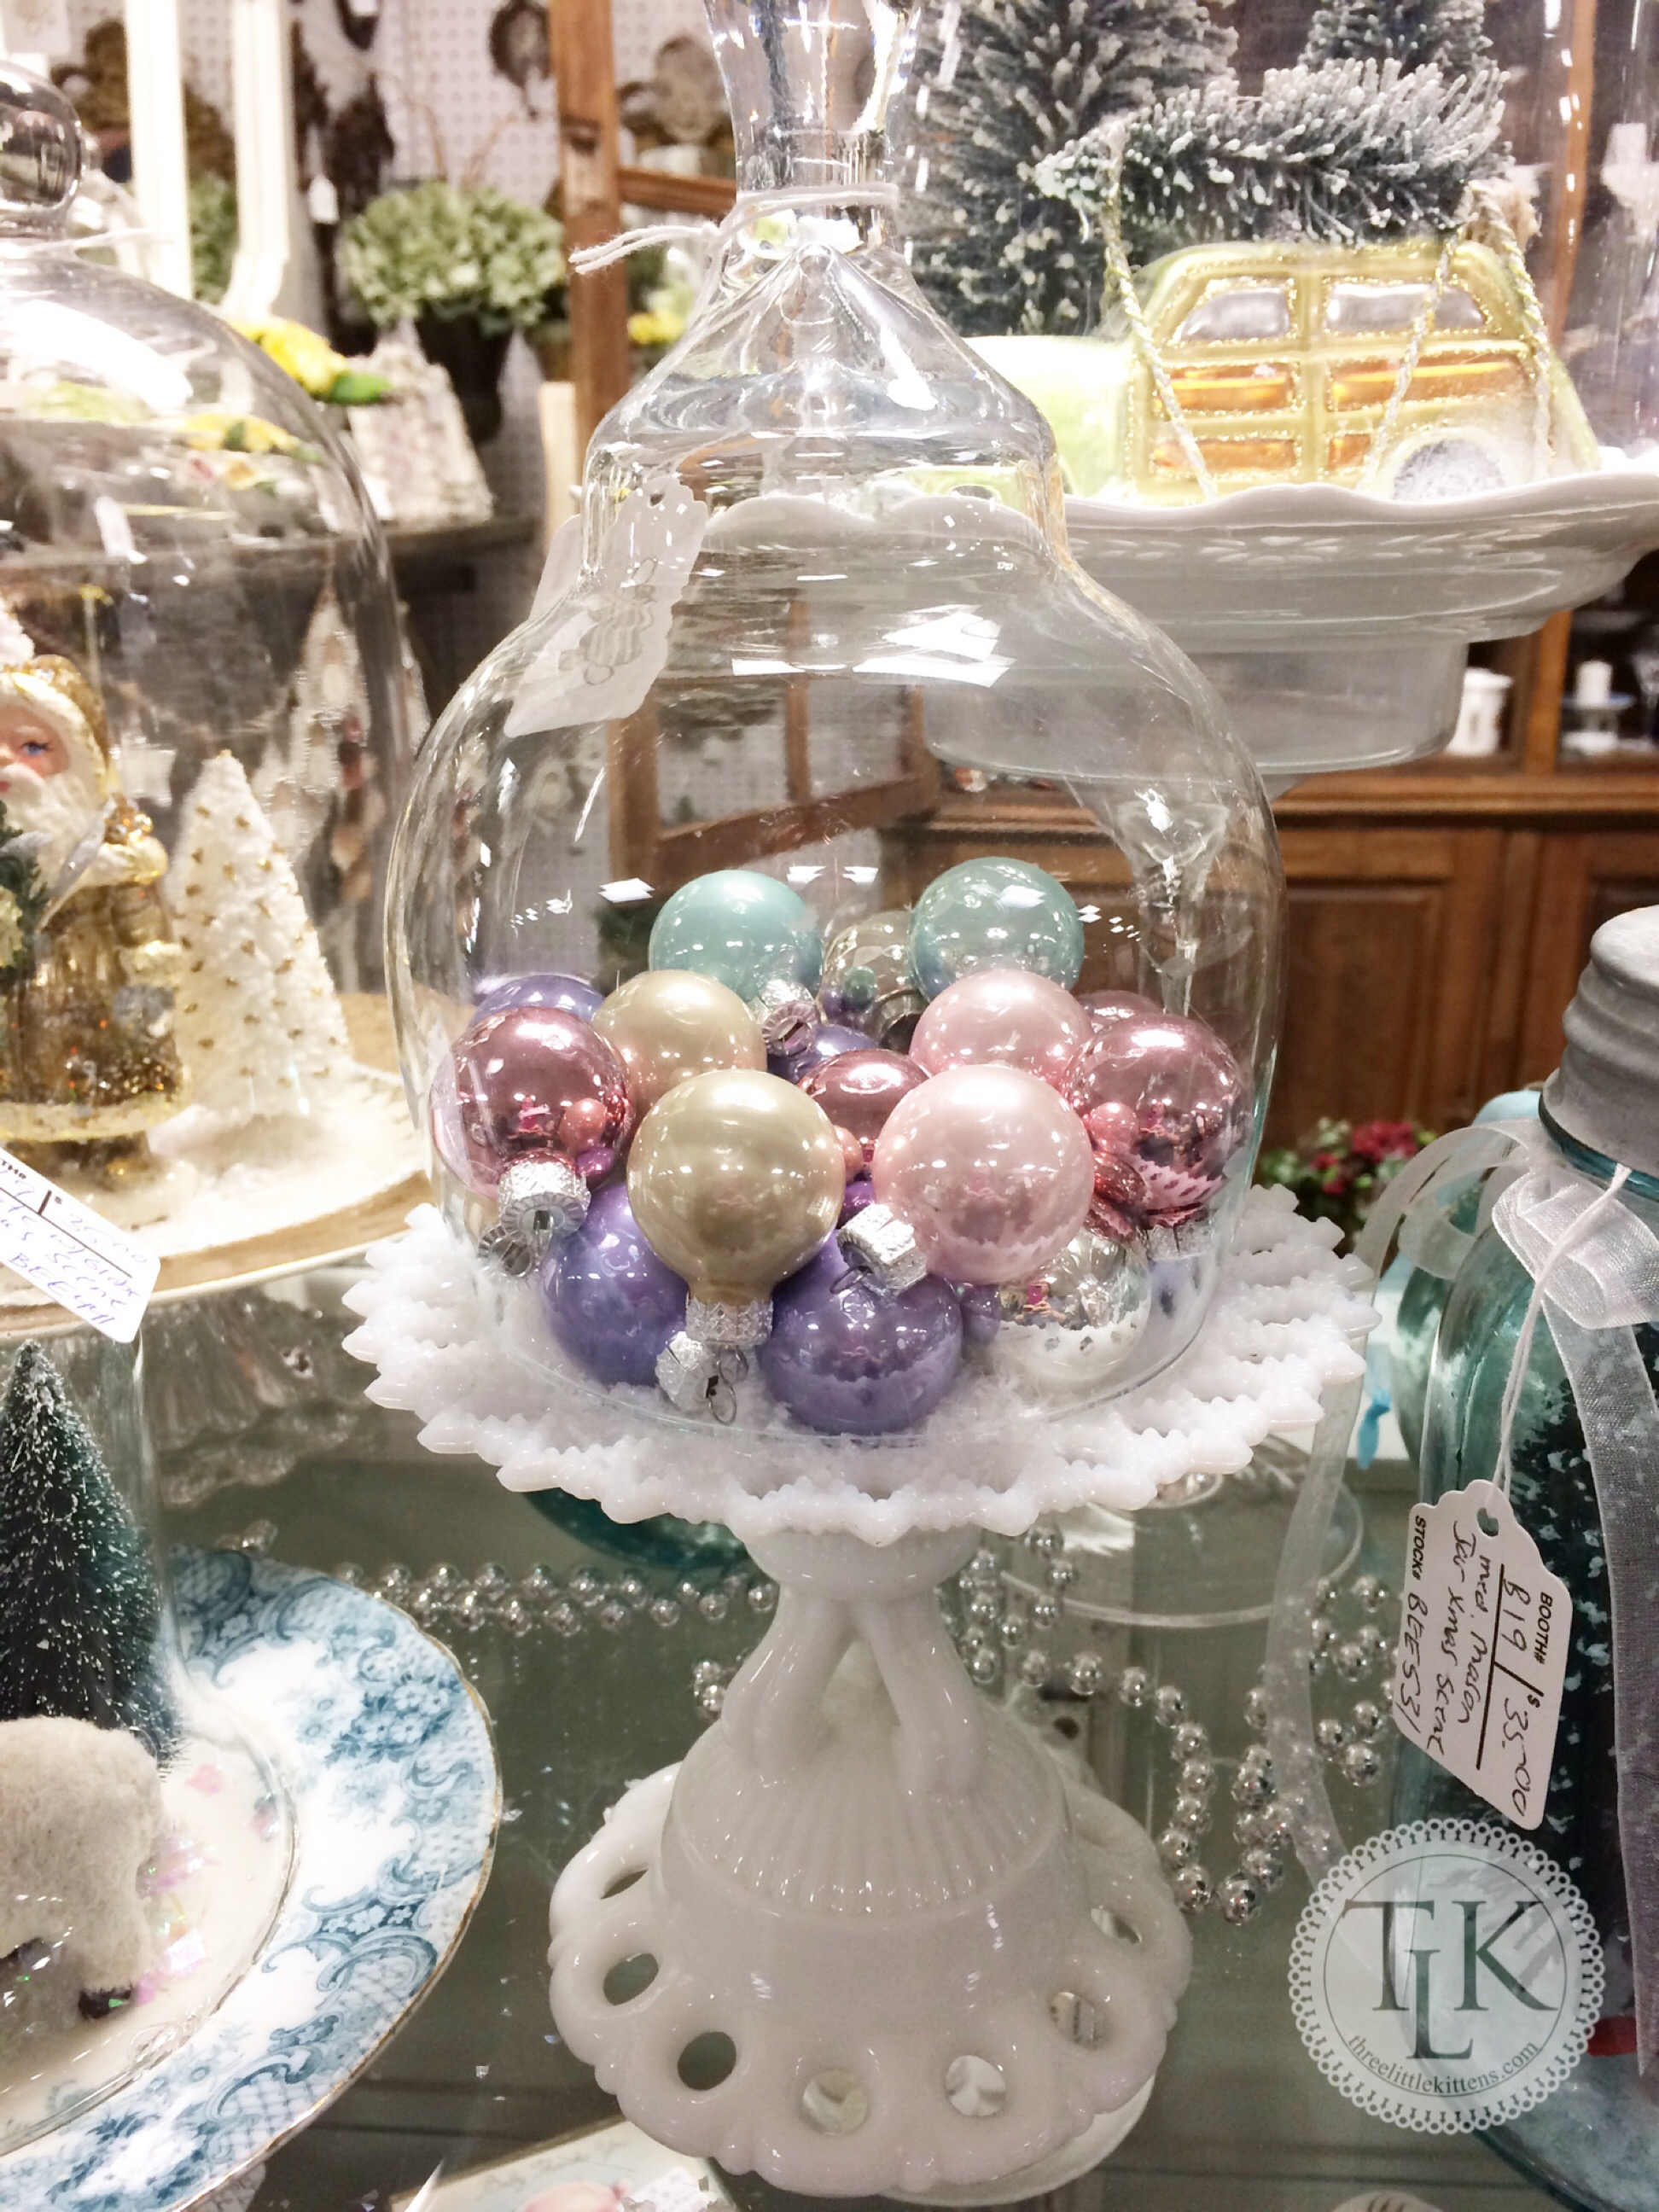 cake plate of pastel ornaments under a cloche